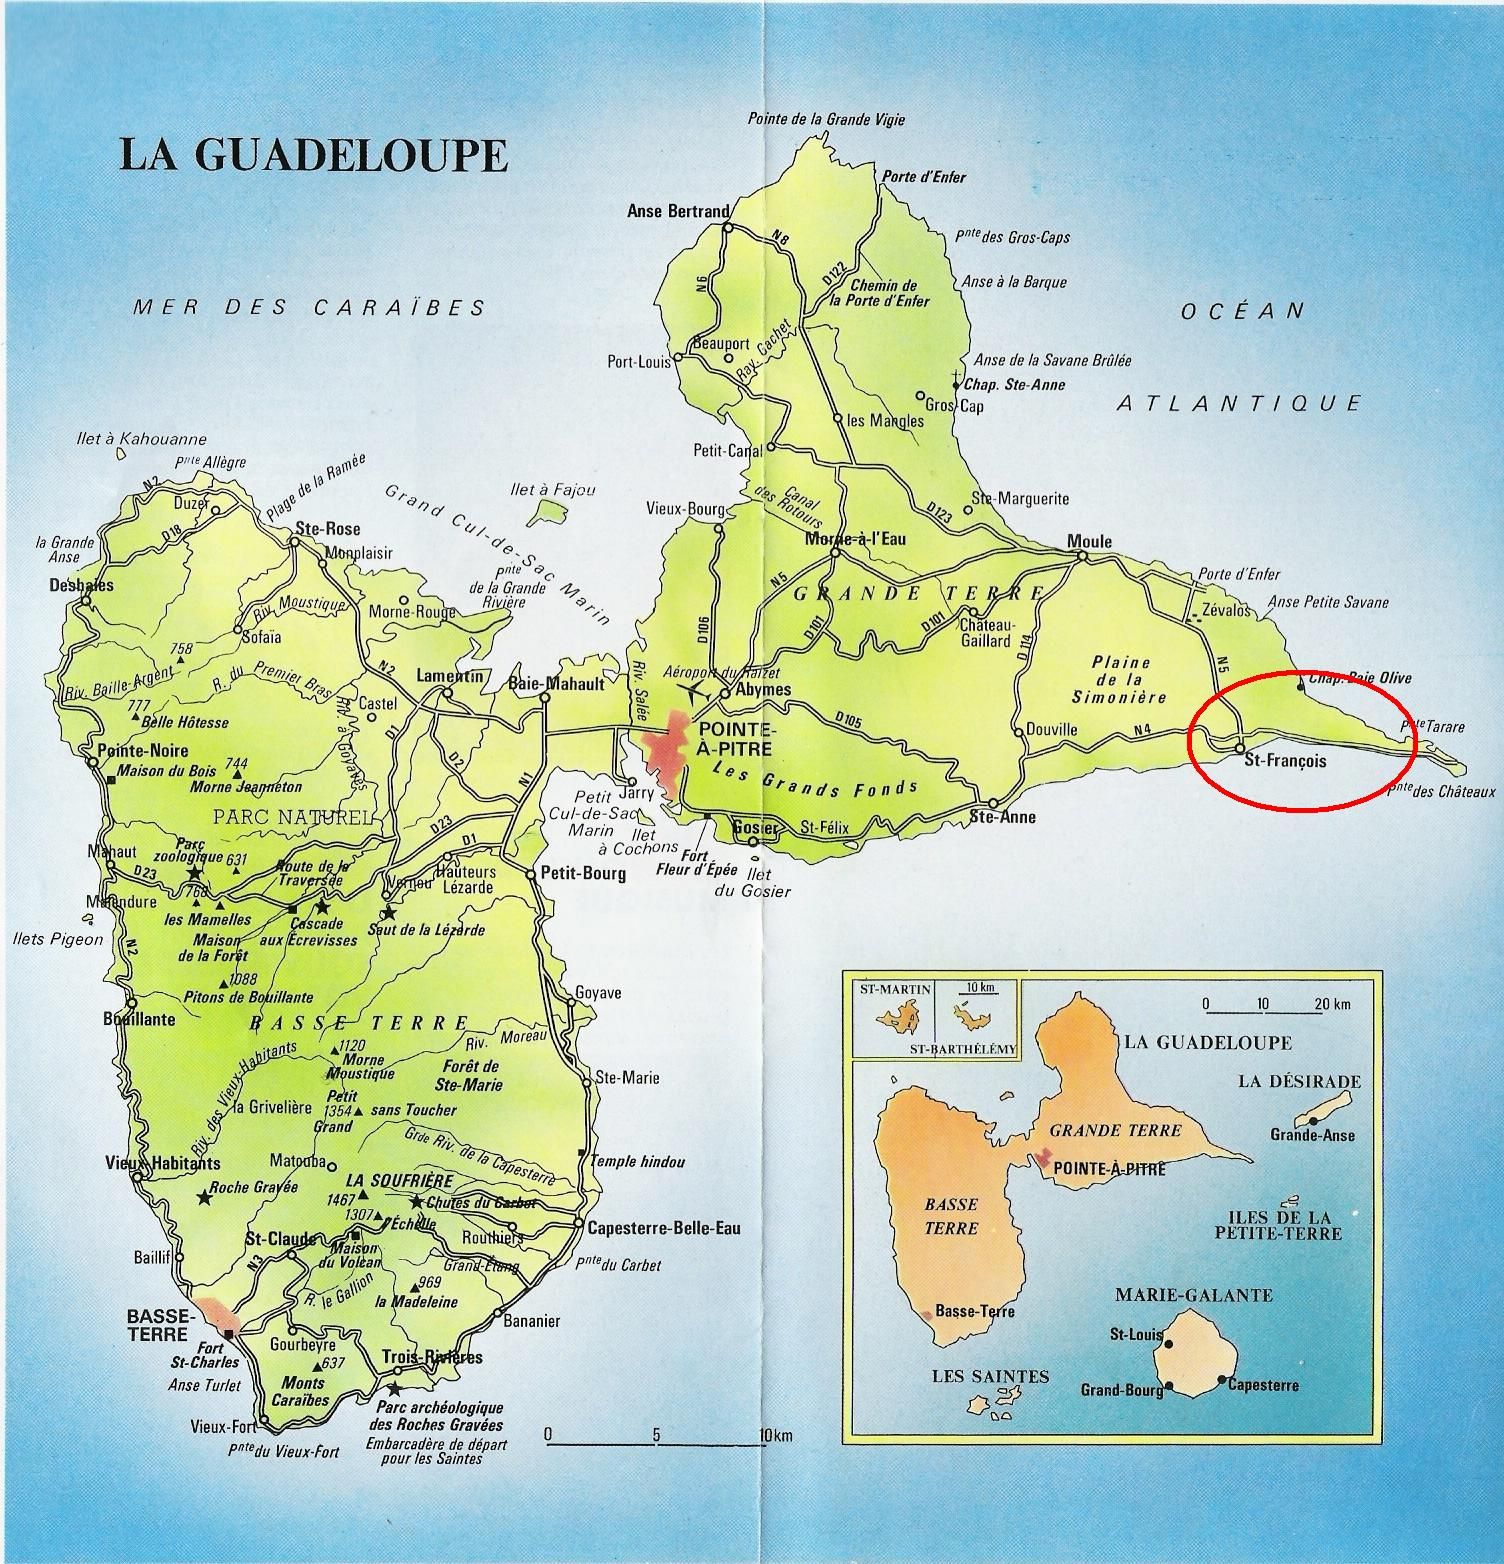 carte-geographique-de-la-guadeloupe - Photo